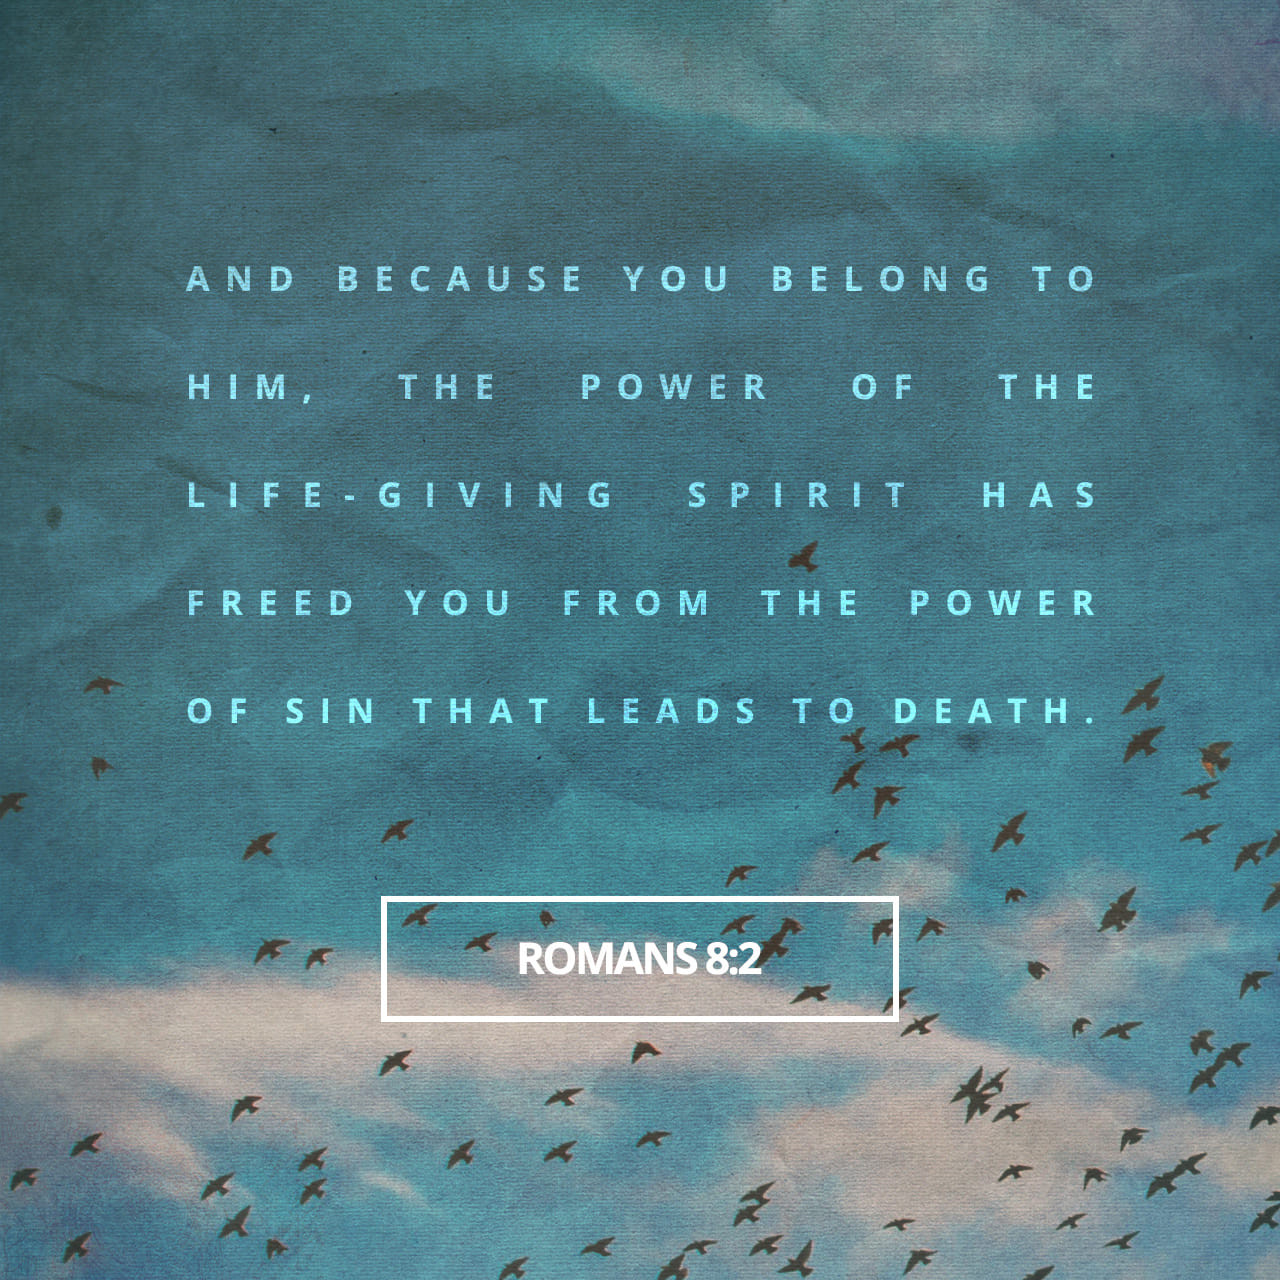 Romans 8:2 For the law of the Spirit of life in Christ Jesus hath made me free from the law of sin and death. | King James Version (KJV)